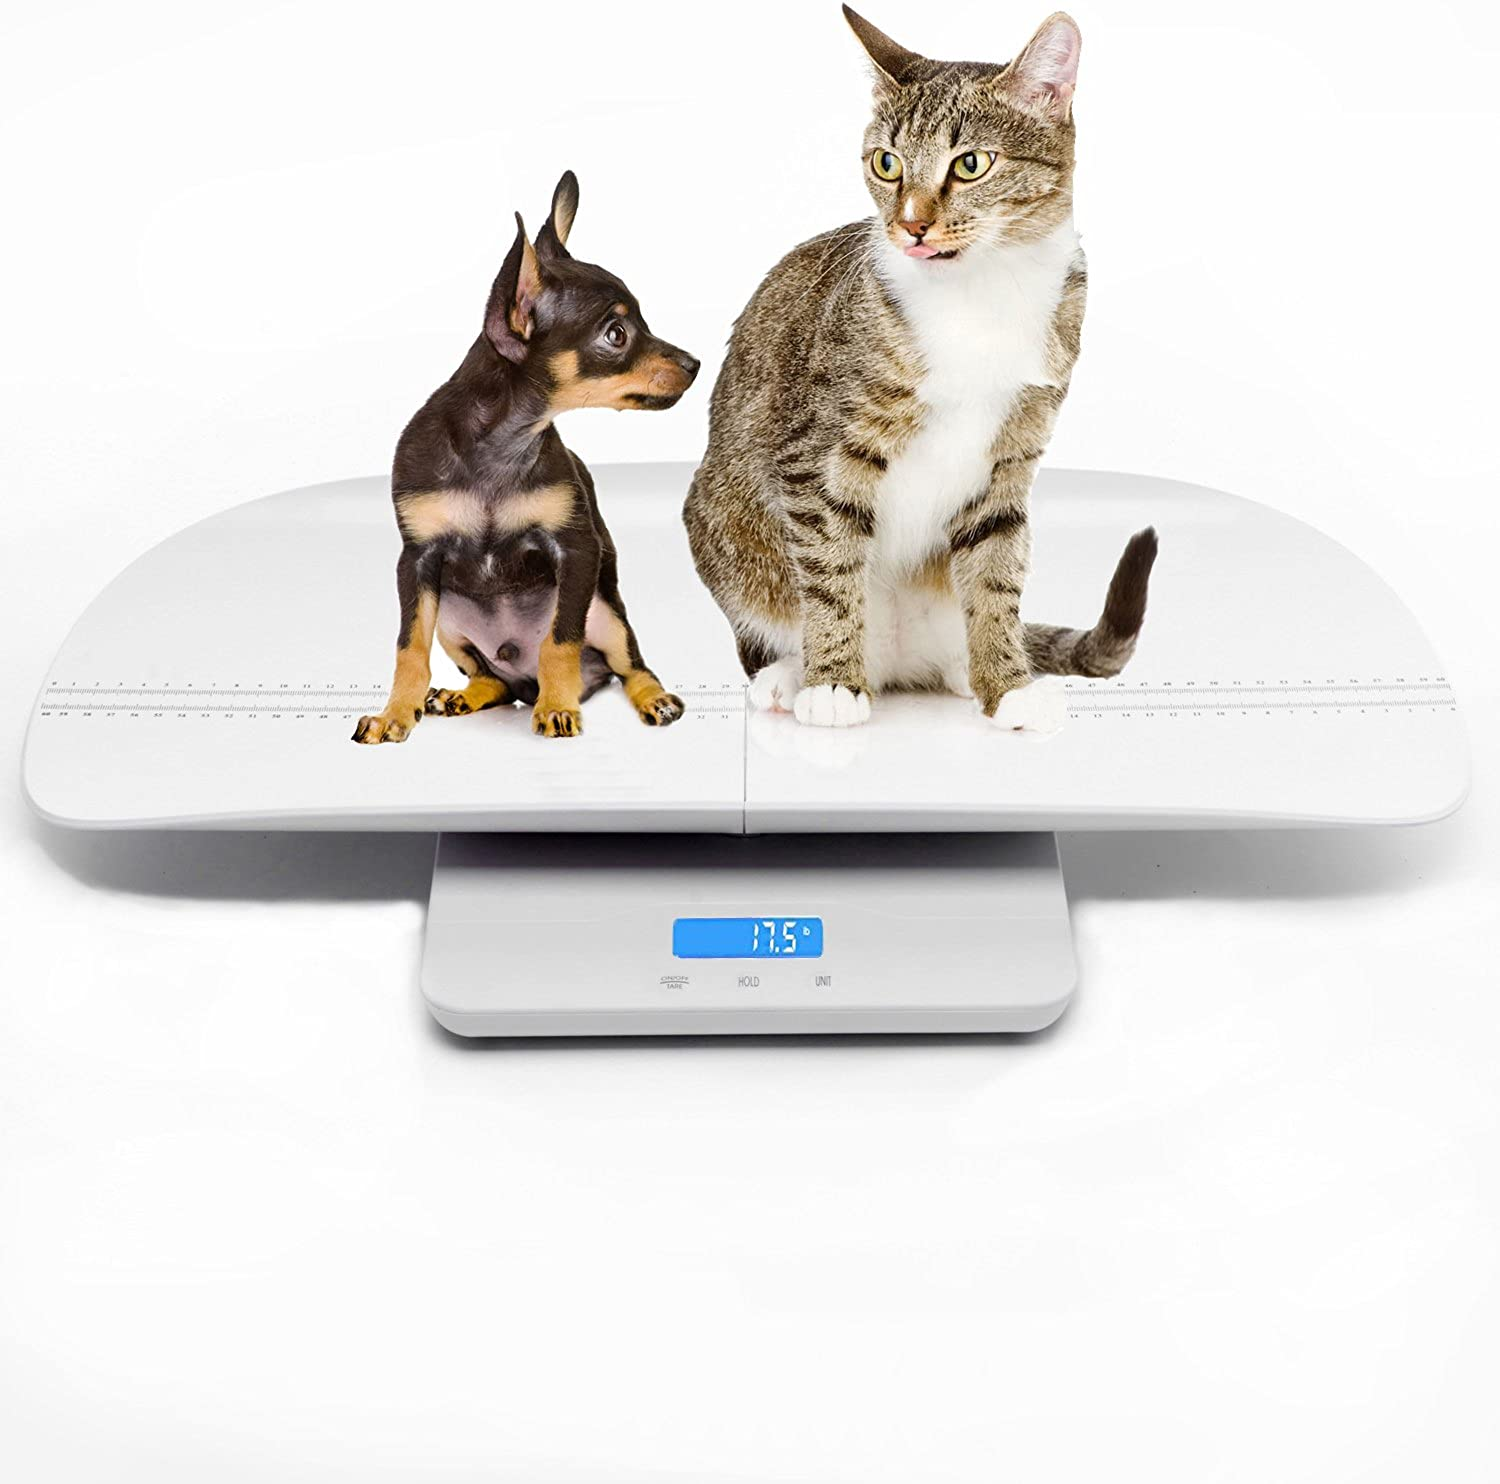 Pet scale to measure Cat   Dog weight accuracy, Capacity 100Kg with 10g accuracy, the pallet height of 60 cm